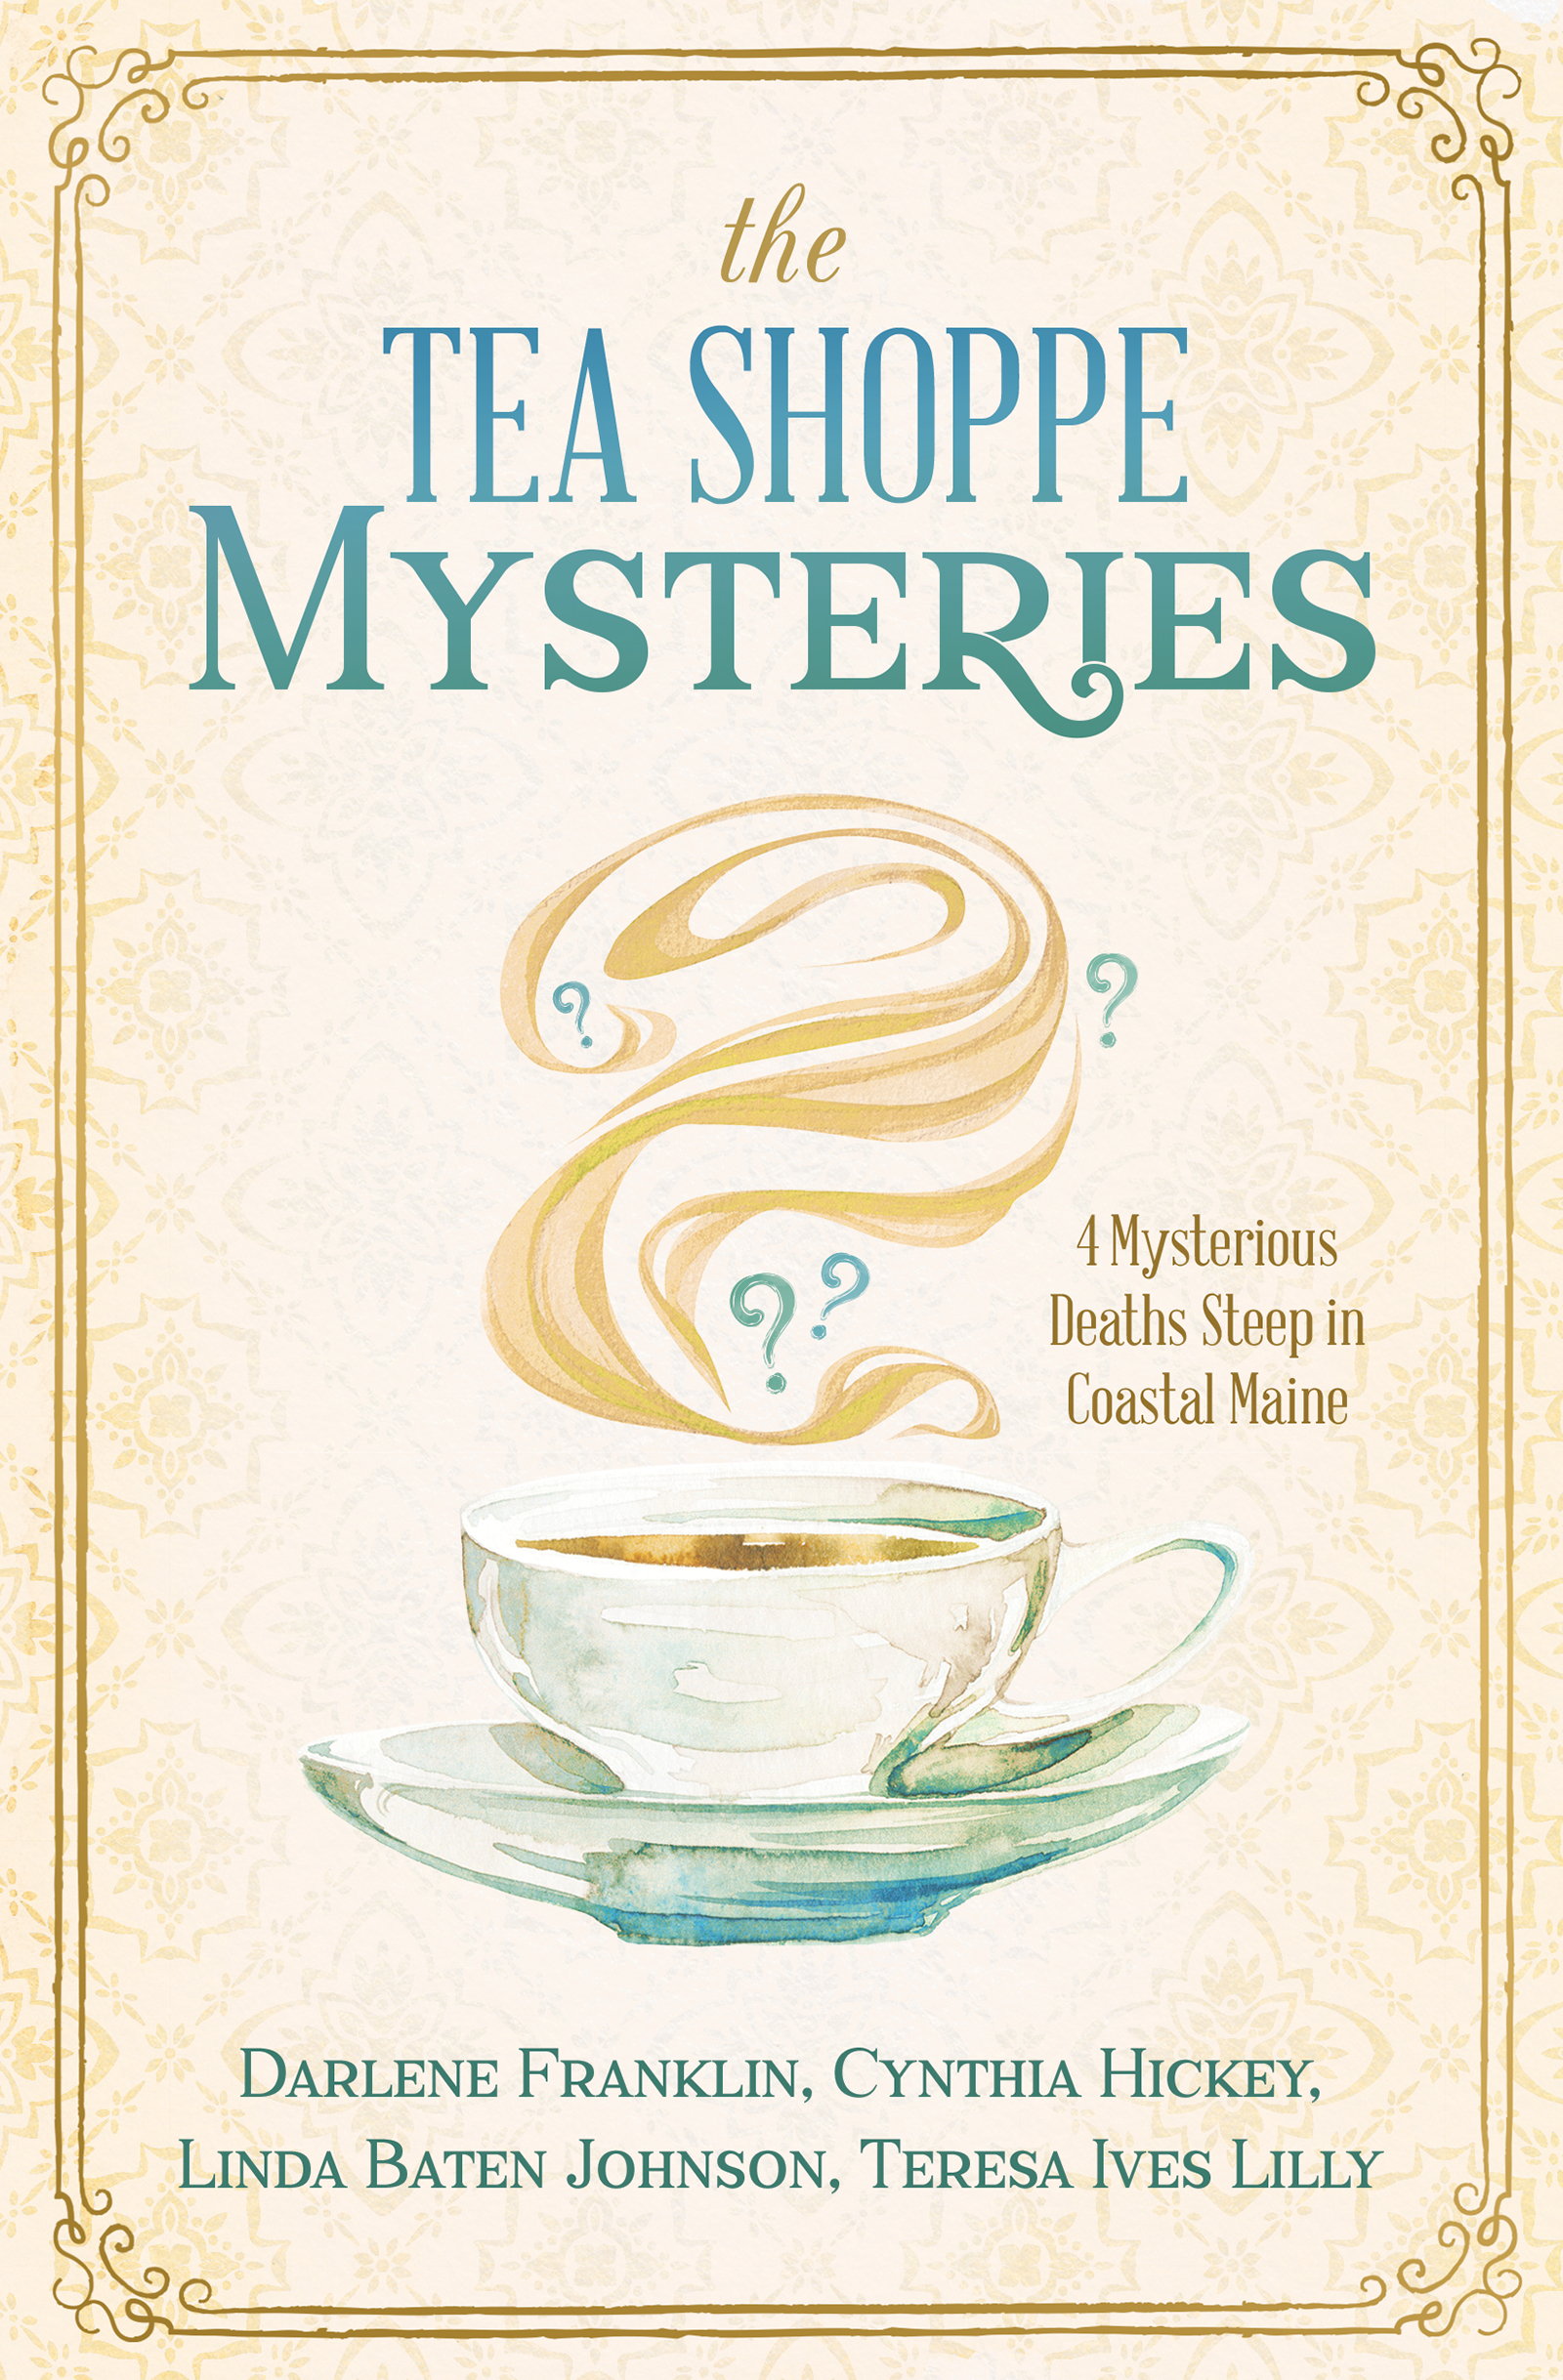 The Tea Shoppe Mysteries